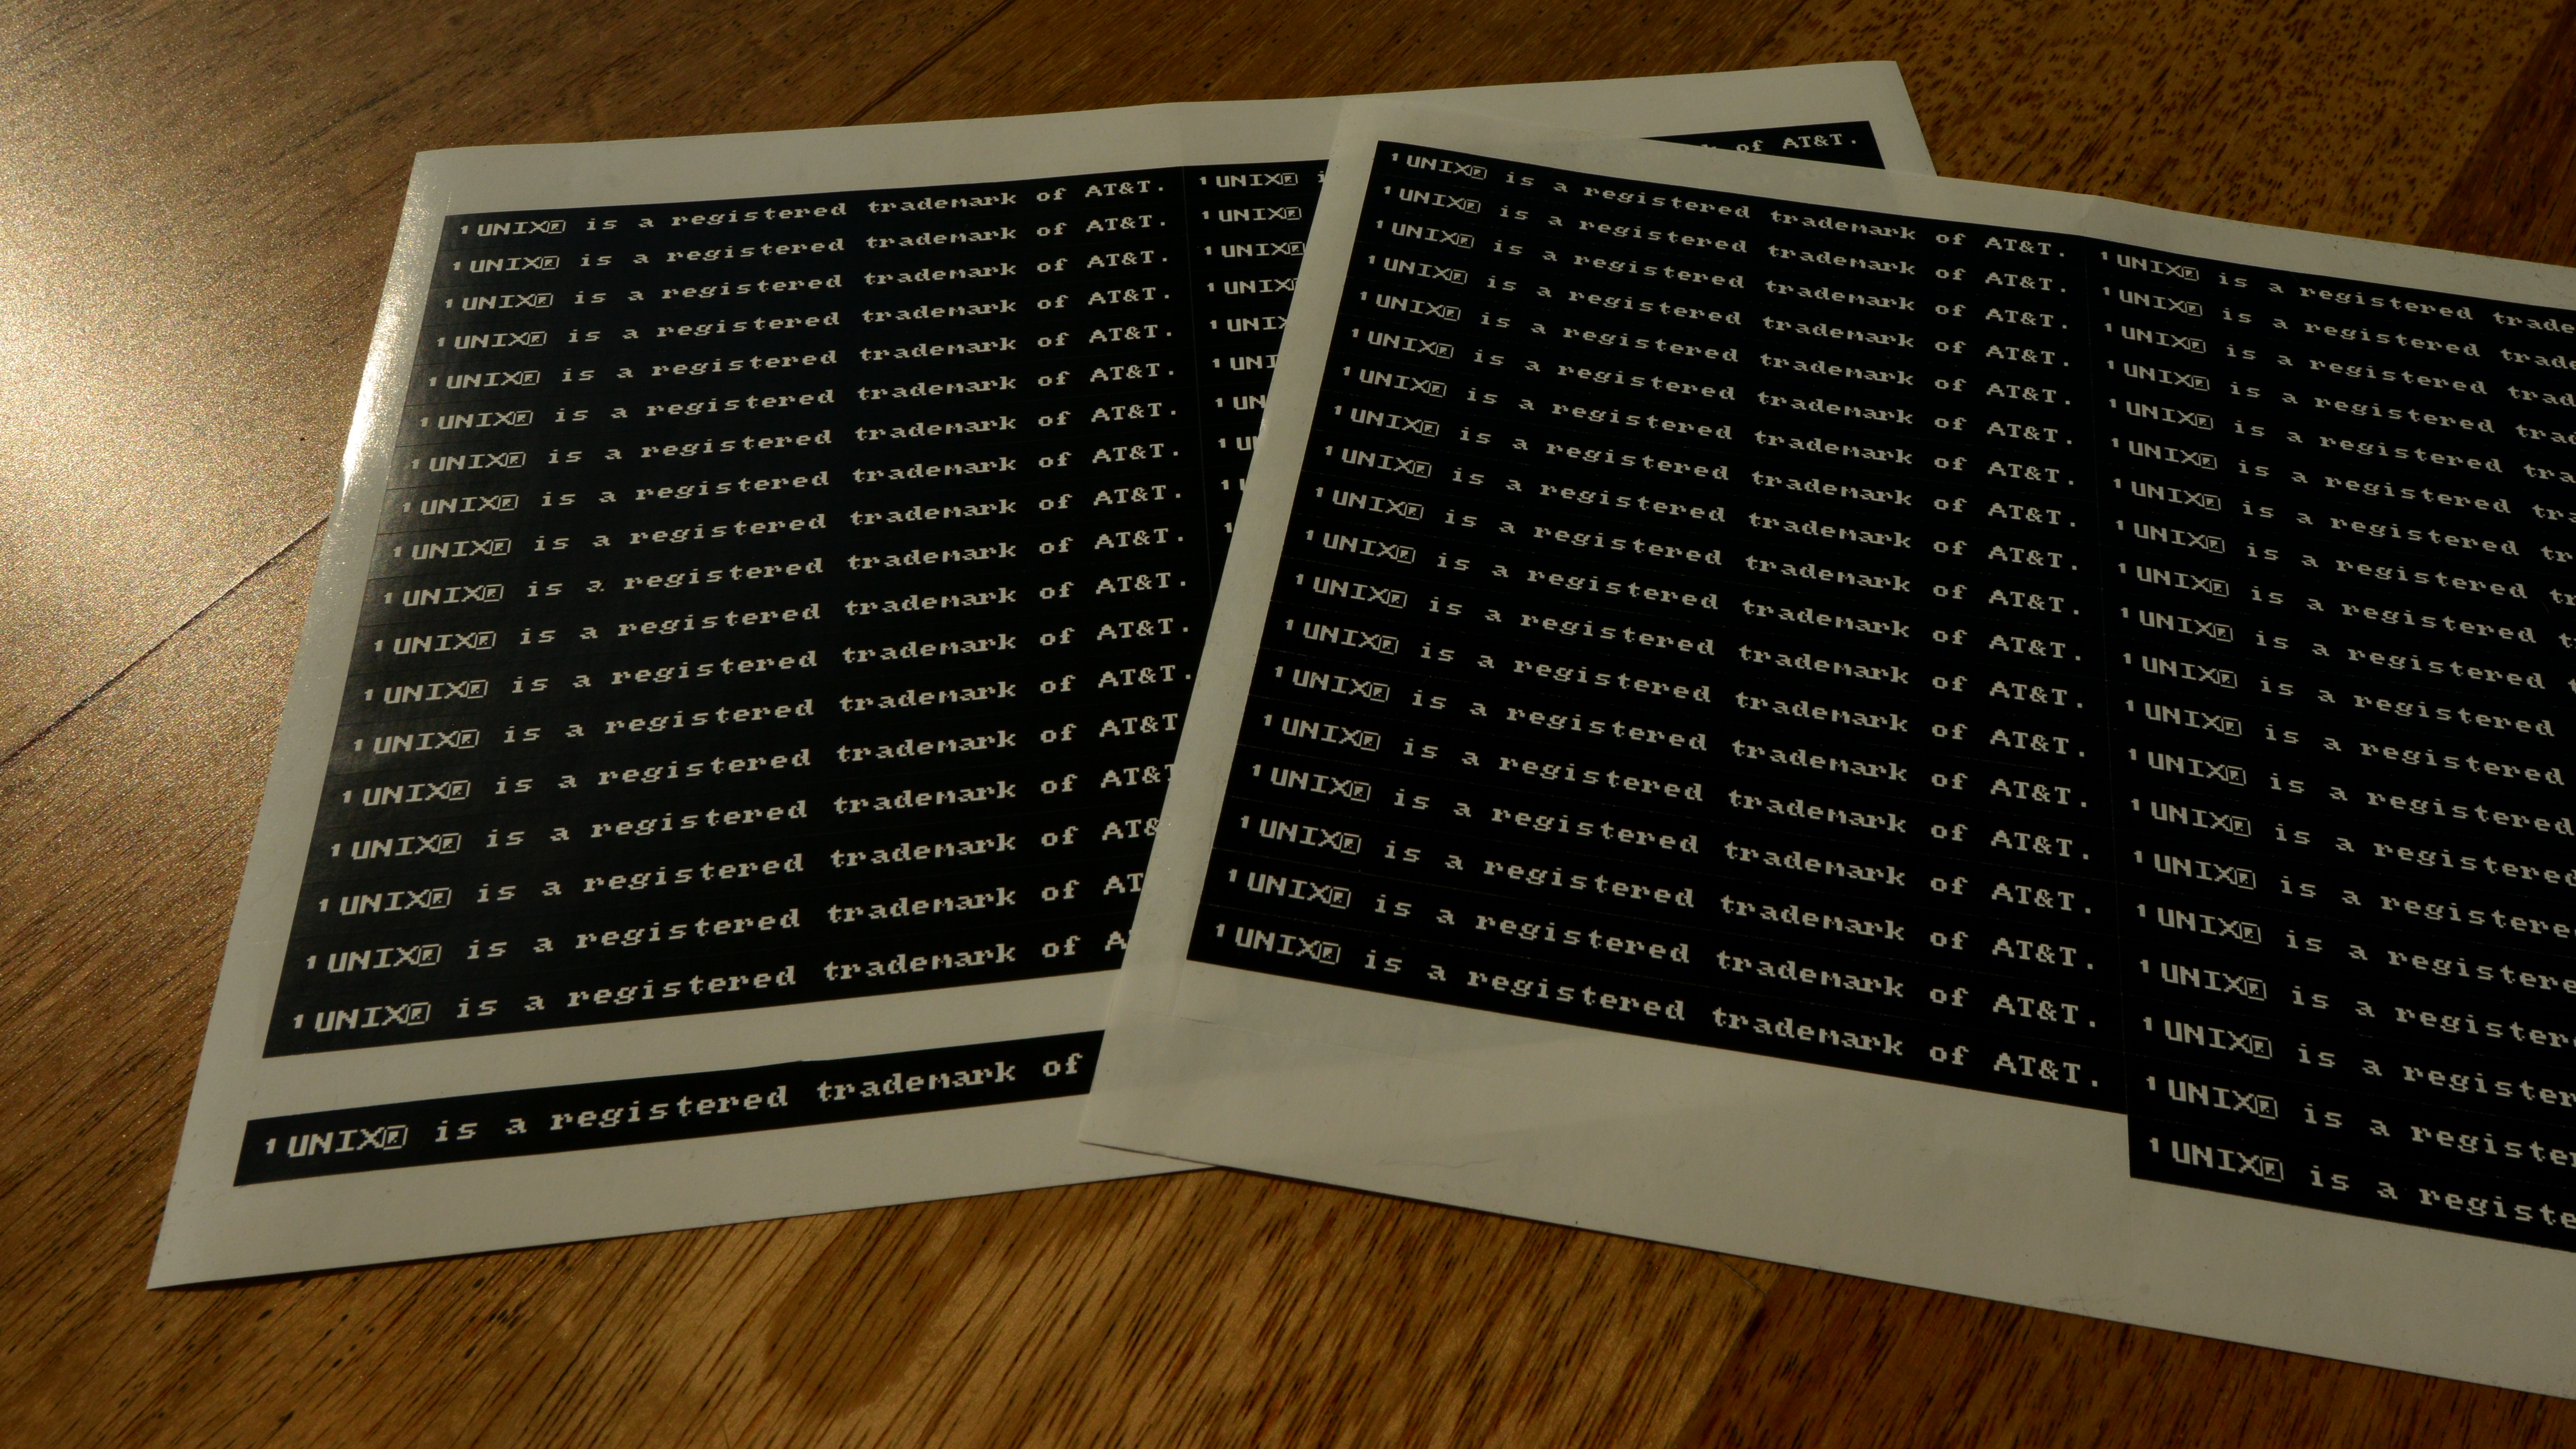 Two matt SRA3 sheets in the same spot, one on top of the other, at a slight angle, with ¹UNIX® is a registered trademark of AT&T. stickers tiled on them. The left is entirely opaque, but shows a tiny bit through the right.